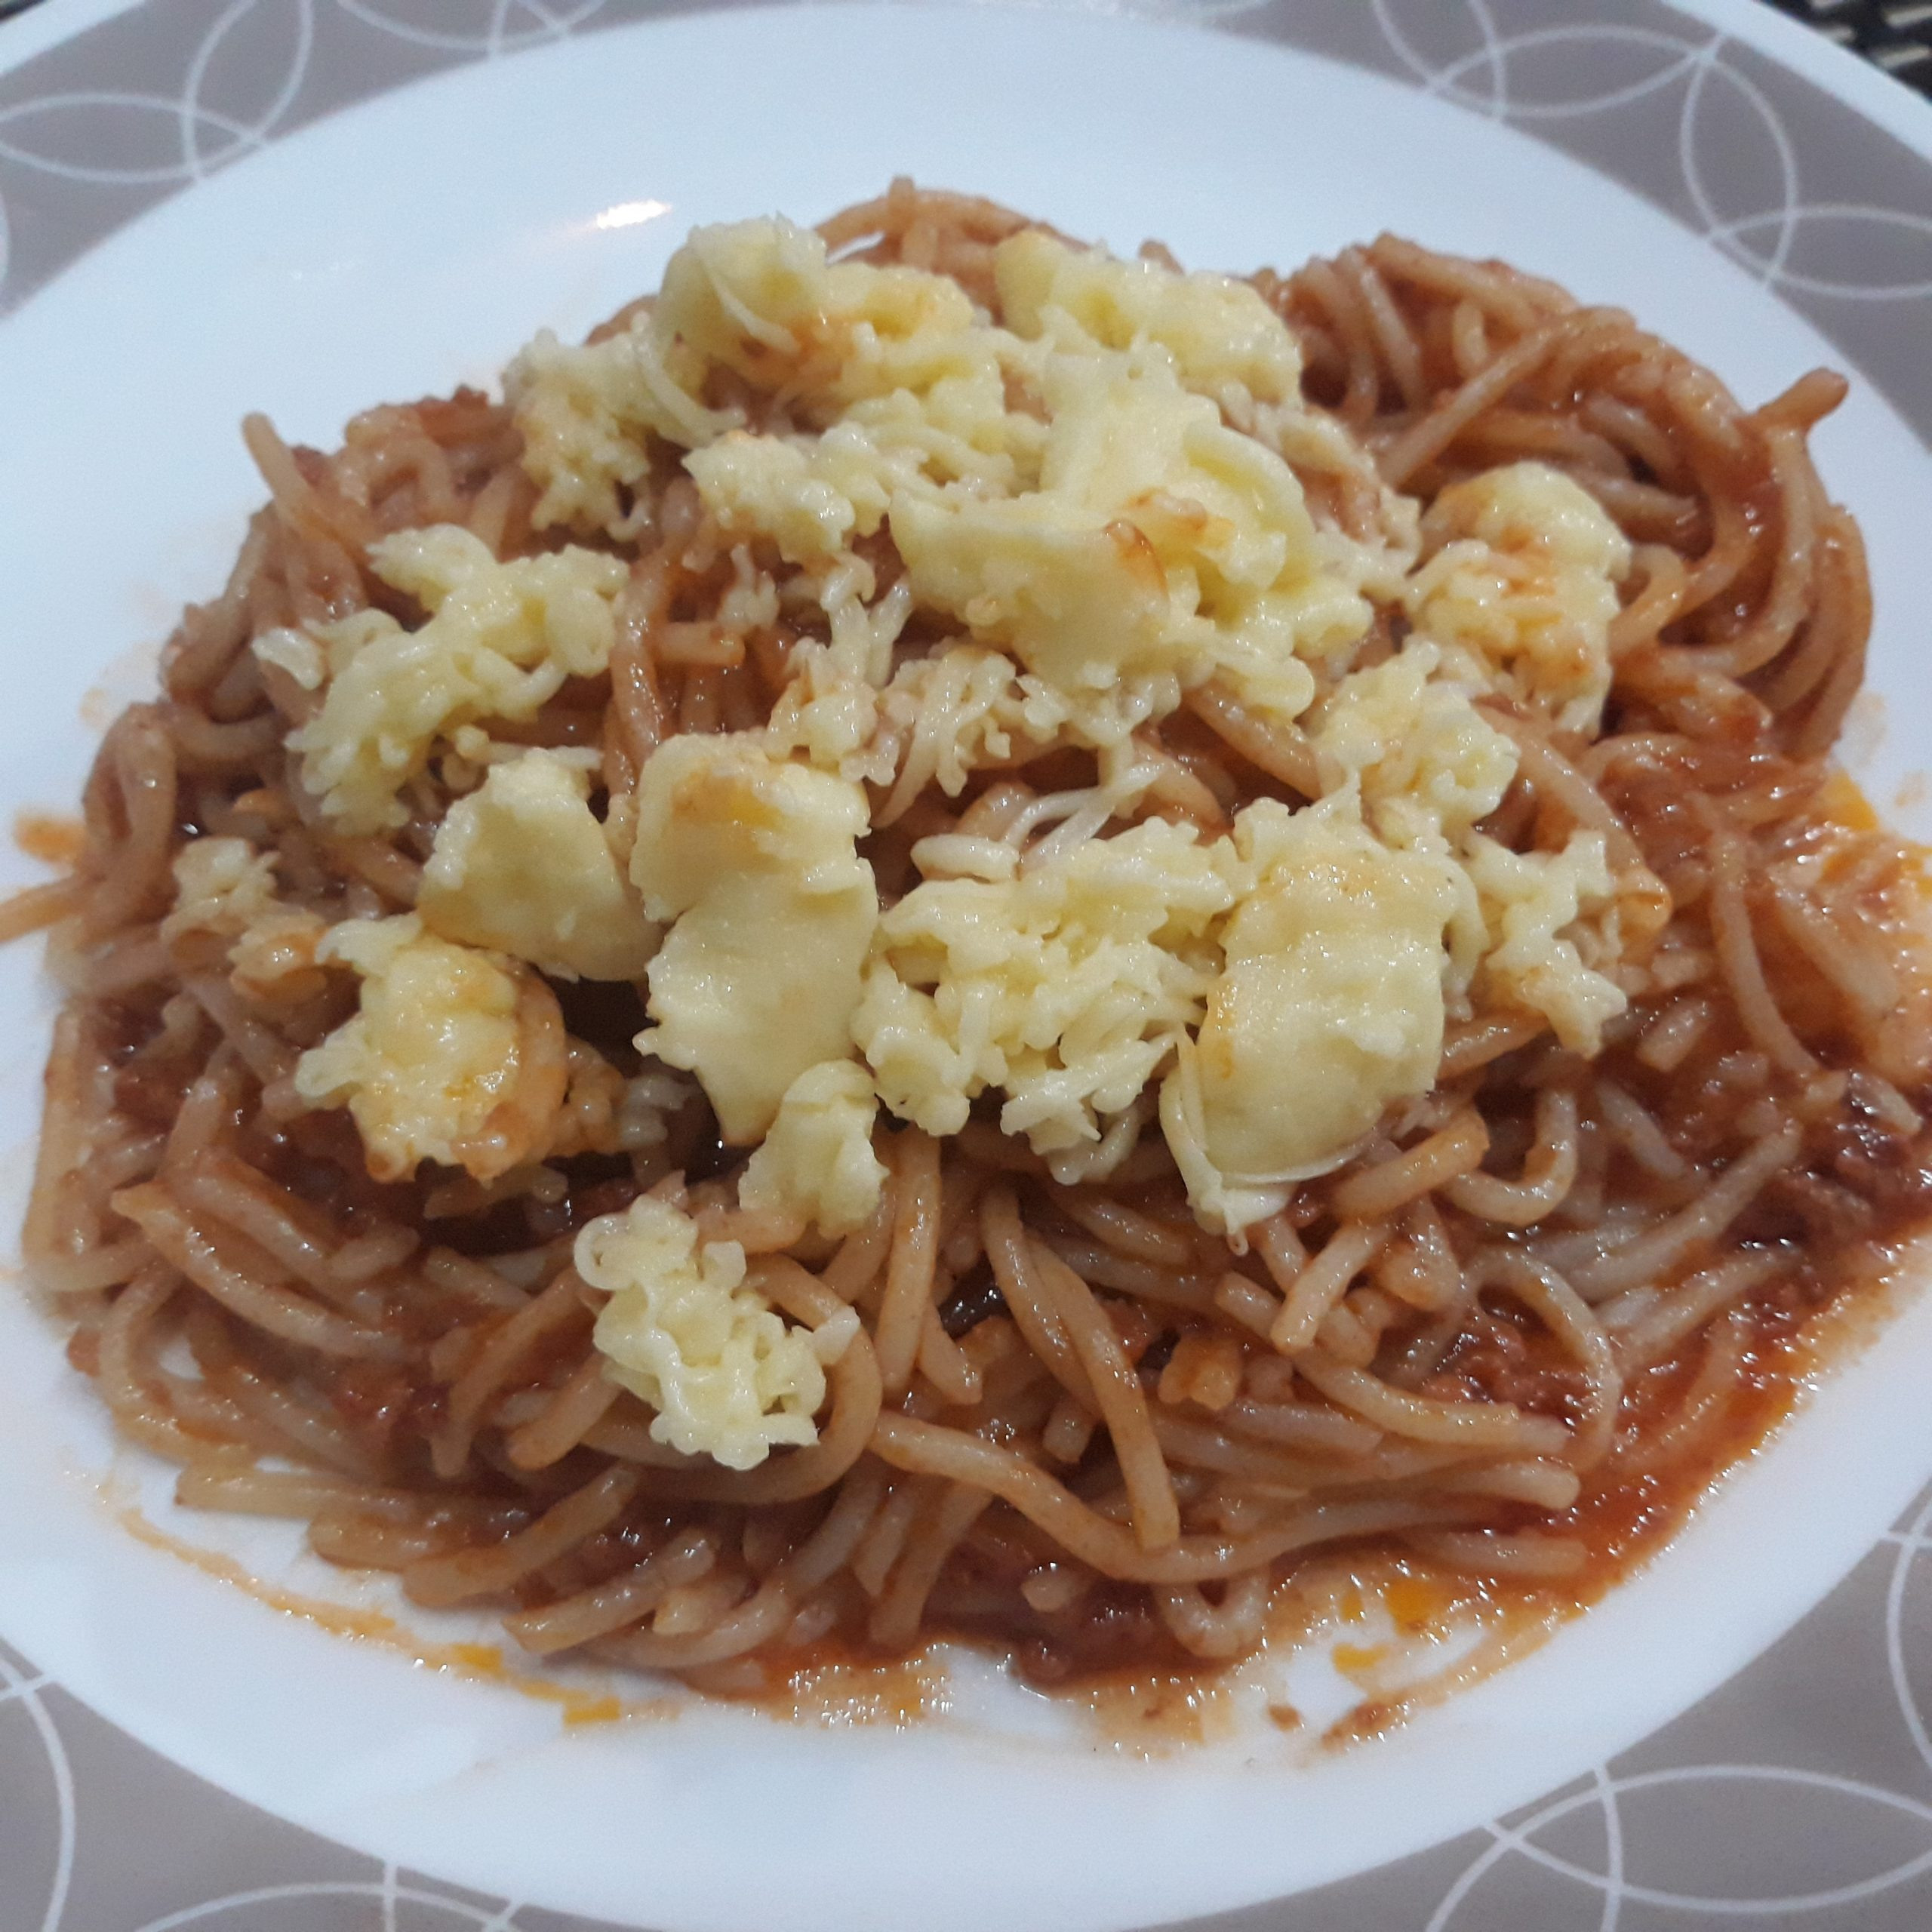 Filipino-style spaghetti topped with lots of cheese.